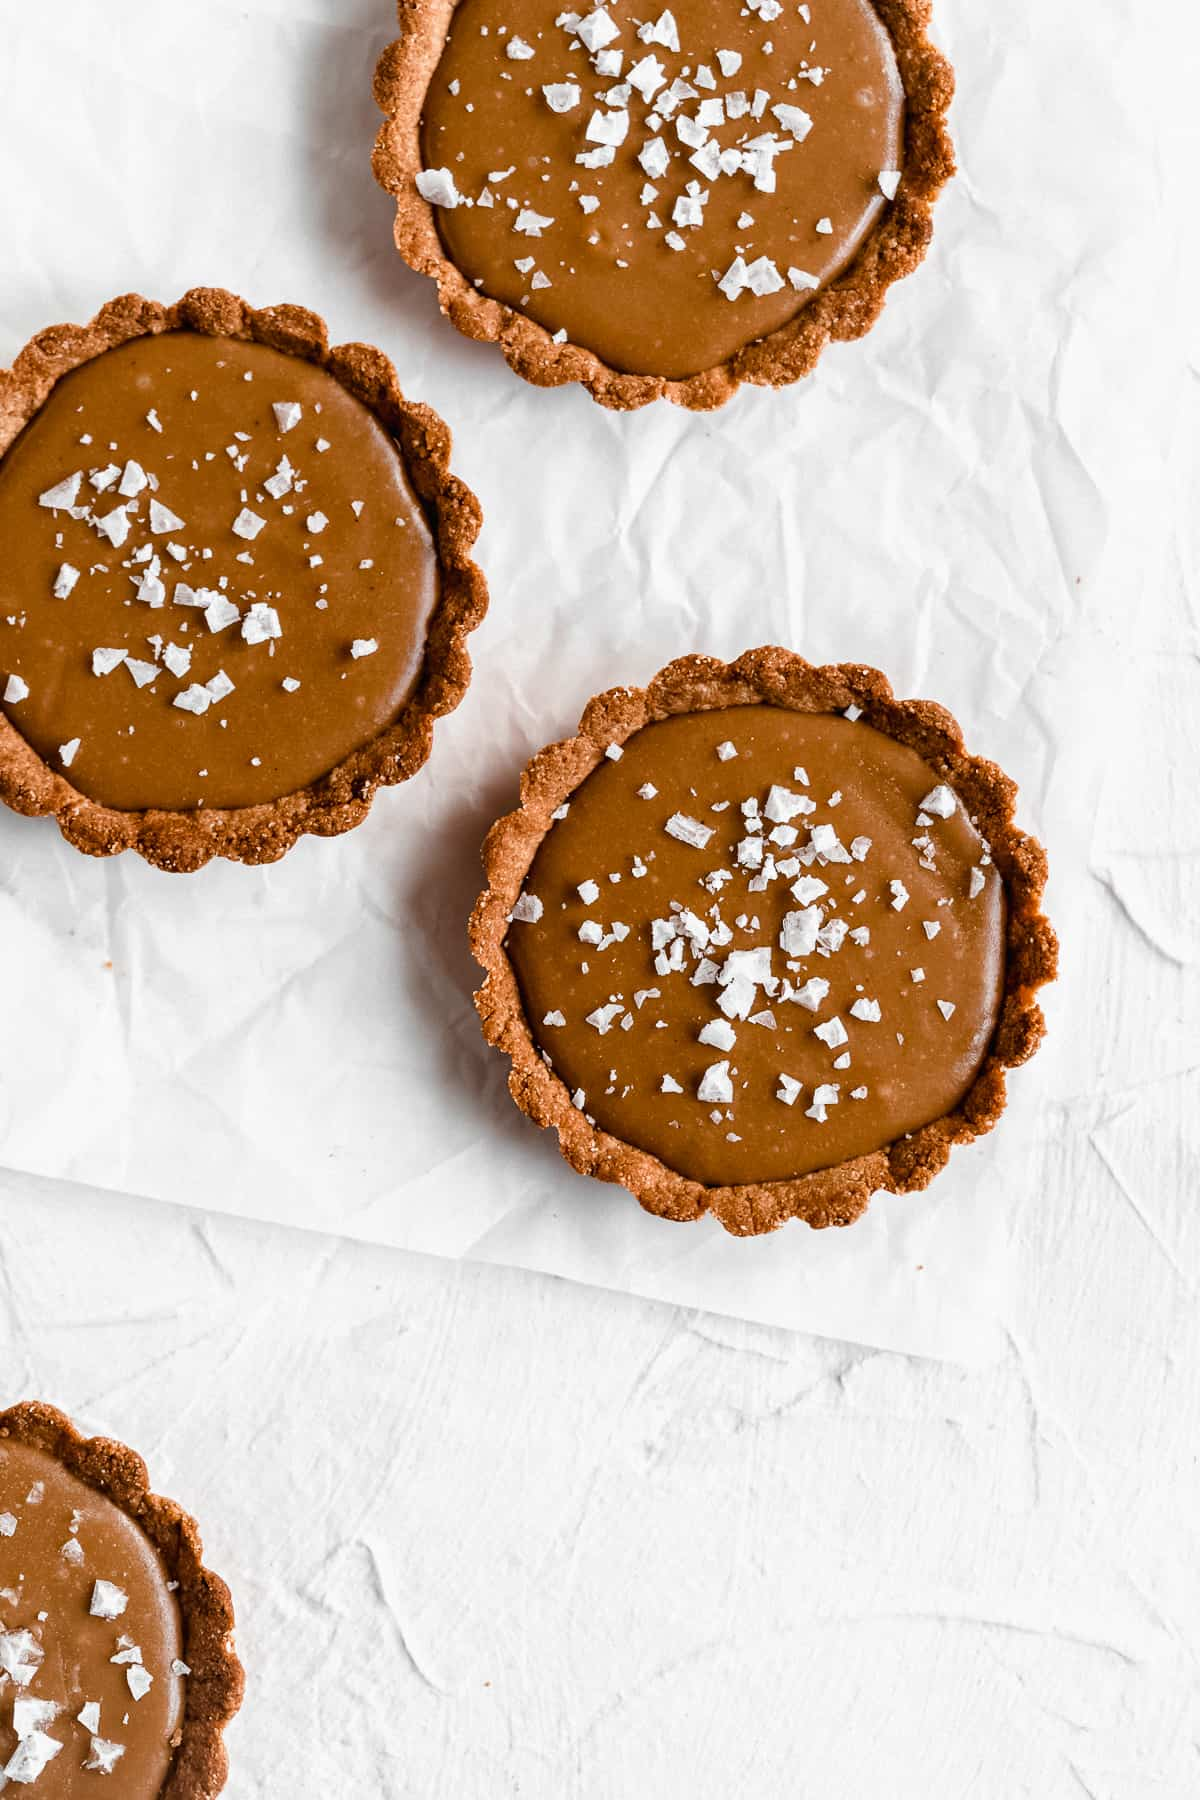 Vegan Salted Caramel Tart Recipe V Gf Paleo Df The Fit Peach